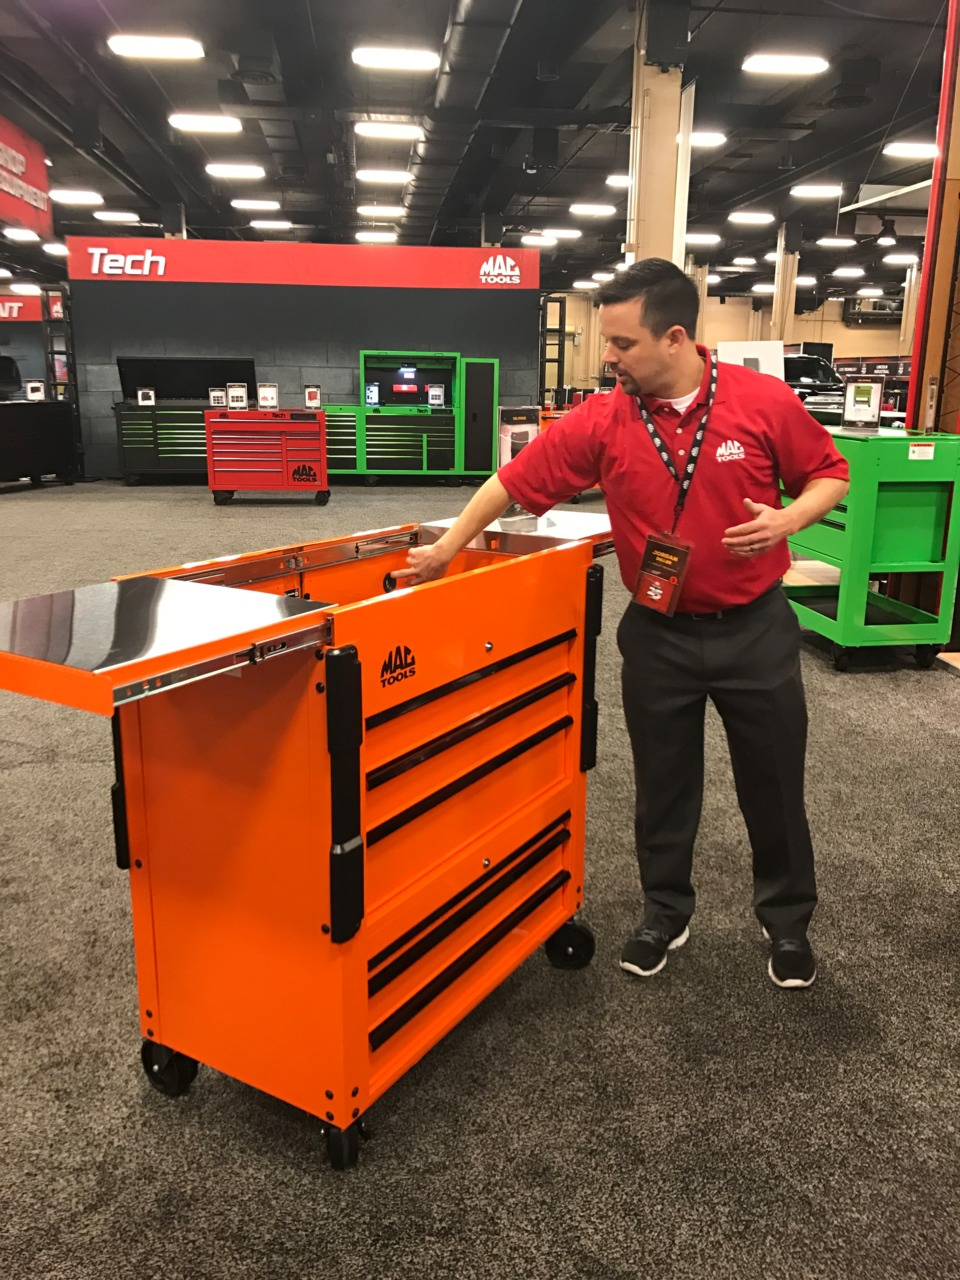 1 2 Cordless Impact >> Mac Tools annual Tool Fair celebrates 25 years of success with a roadmap toward continued growth